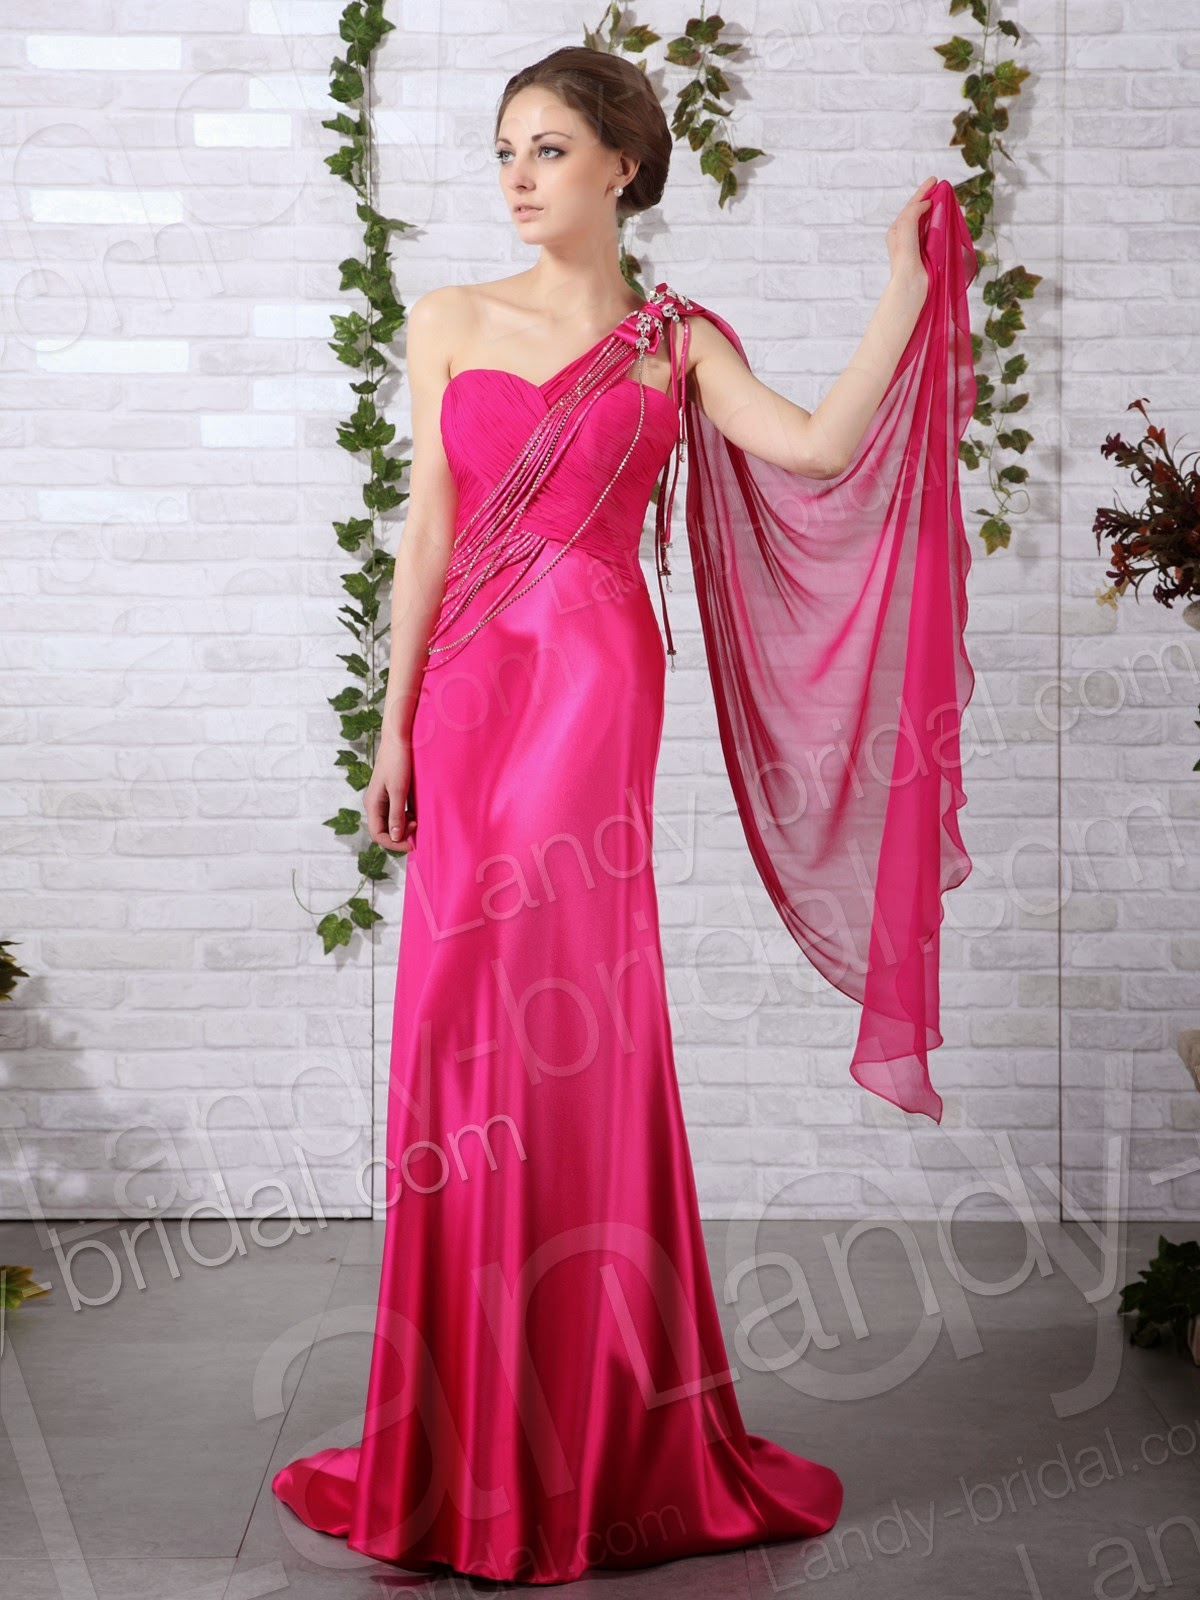 Rent Formal Dresses Indianapolis 33